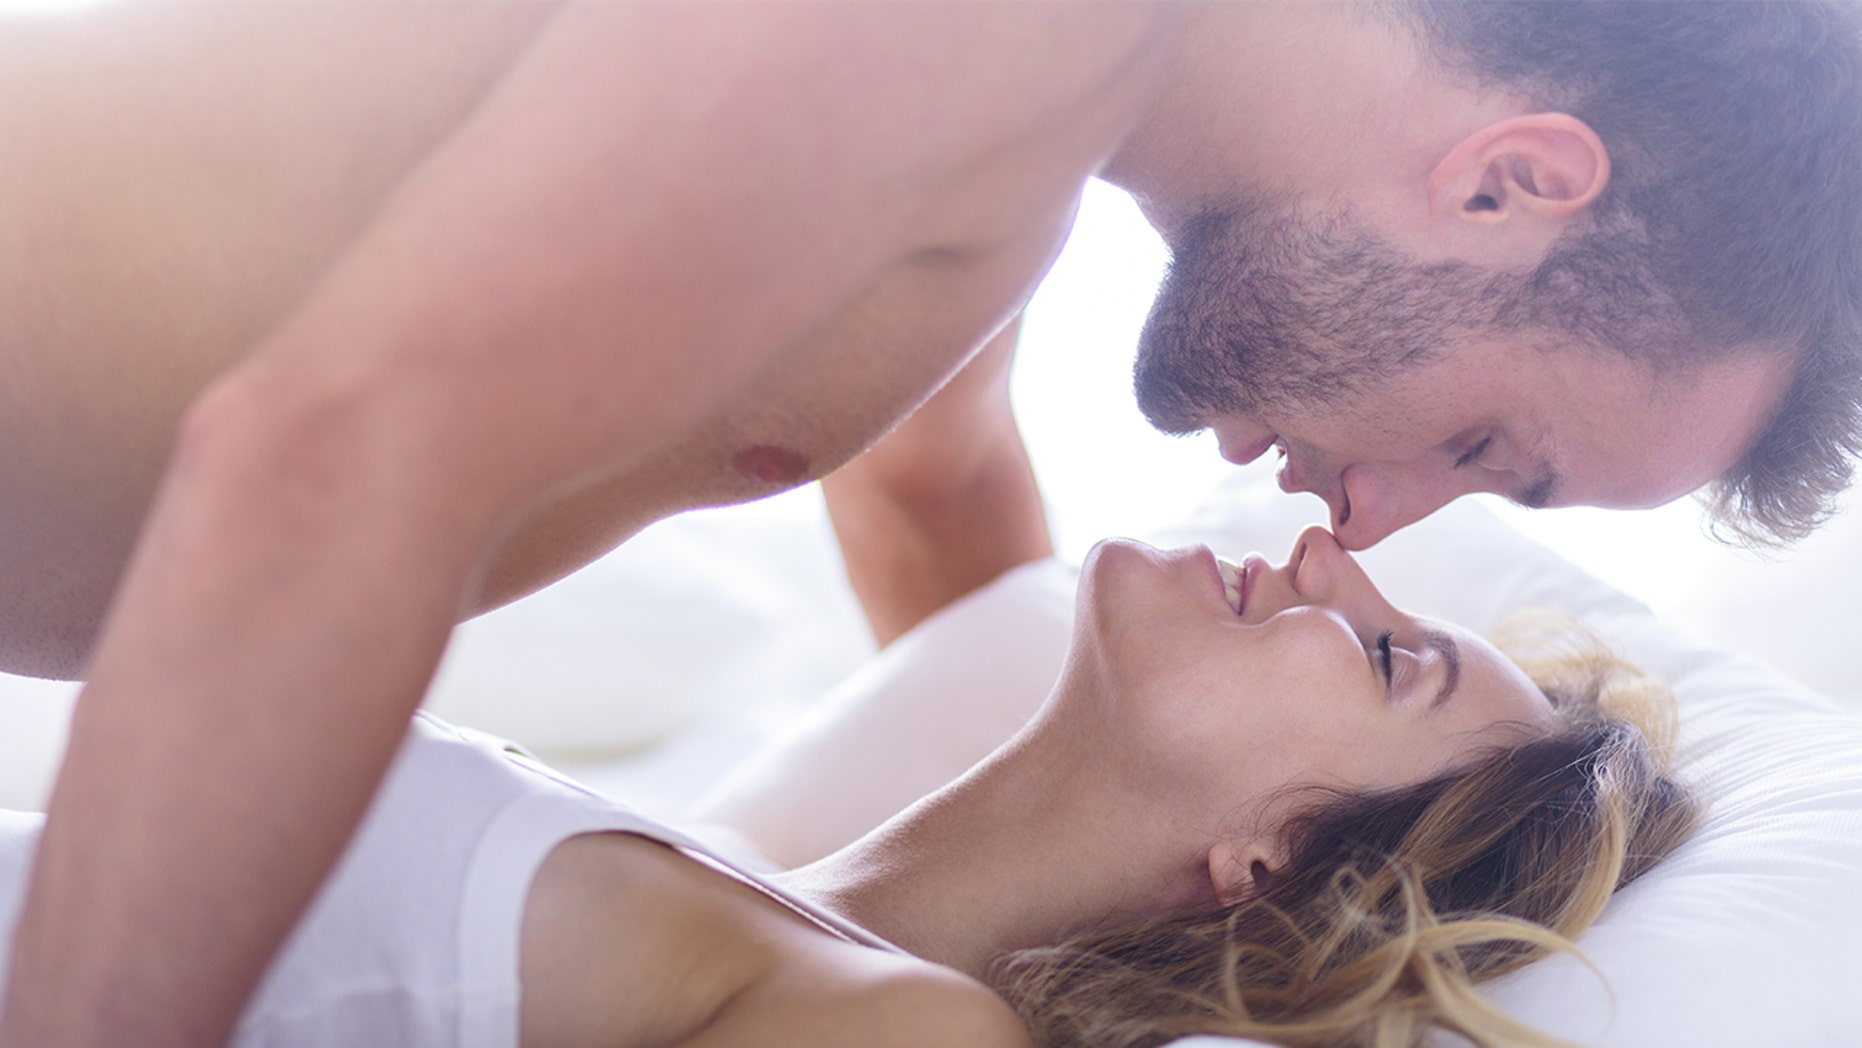 A new study suggests having sex more frequently could be linked to a healthier heart in men